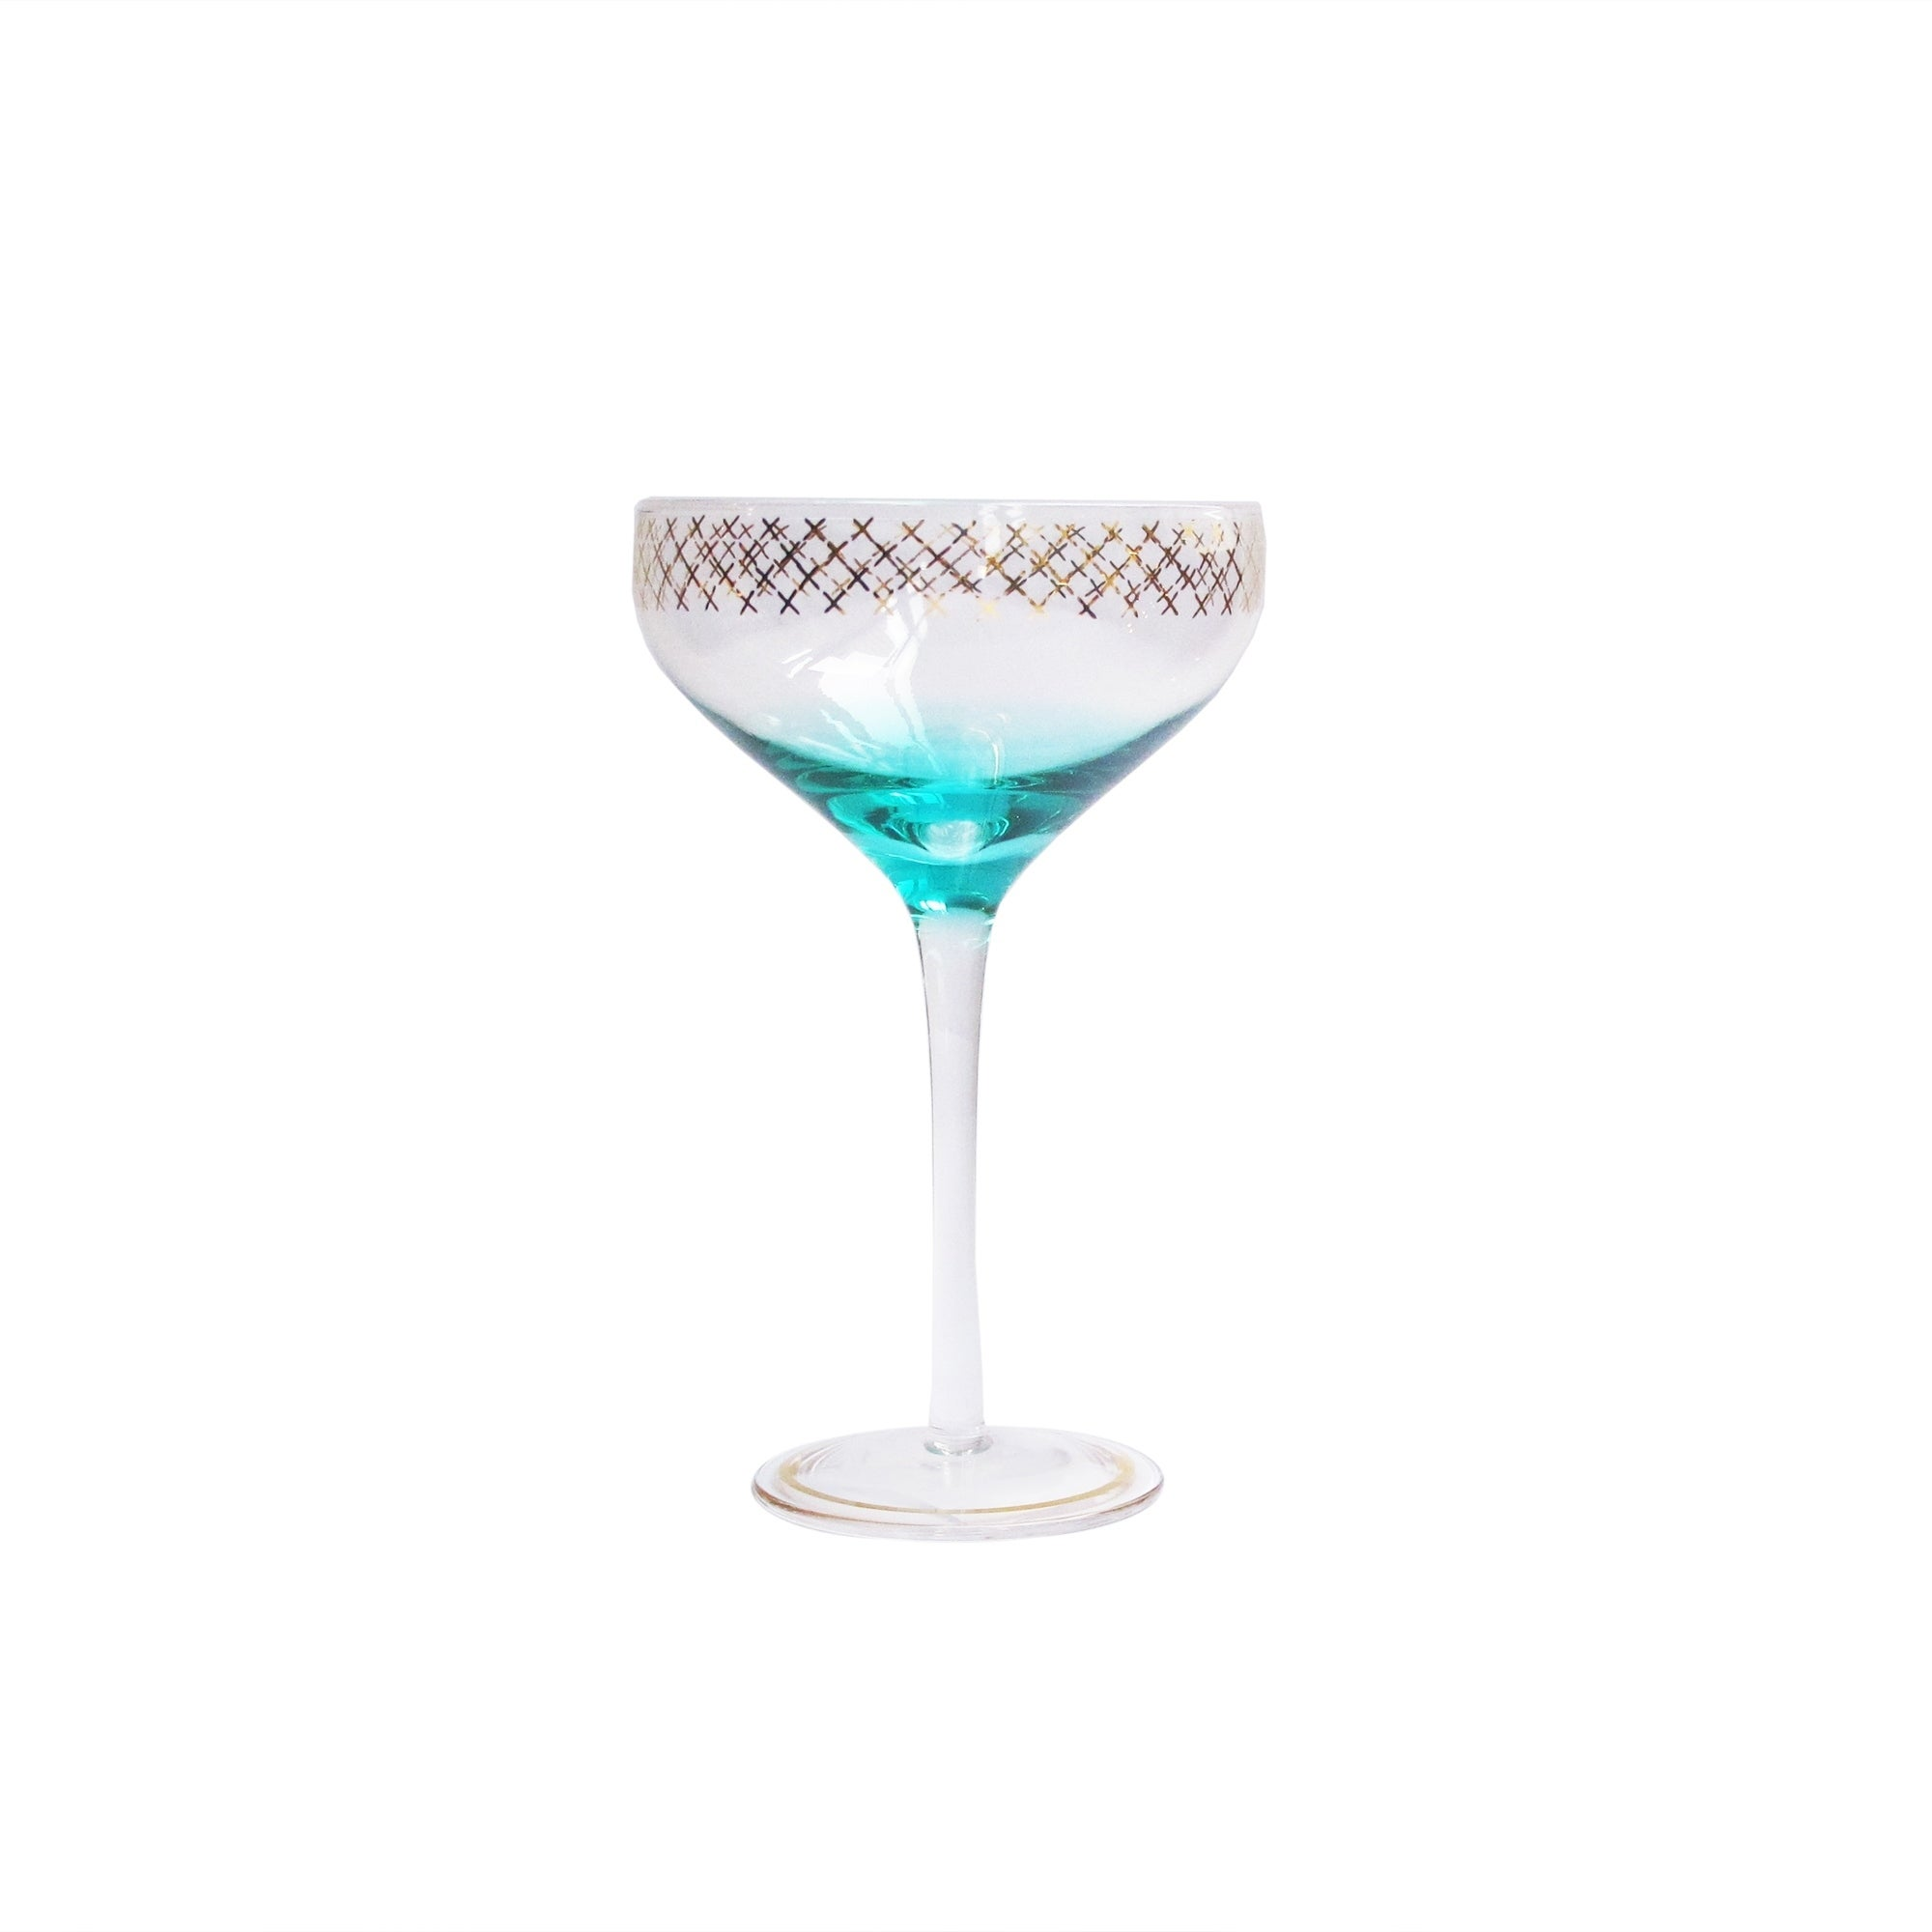 Style Setter Soiree Champagne Coupe Glasses Set Of 2 Overstock 28373896